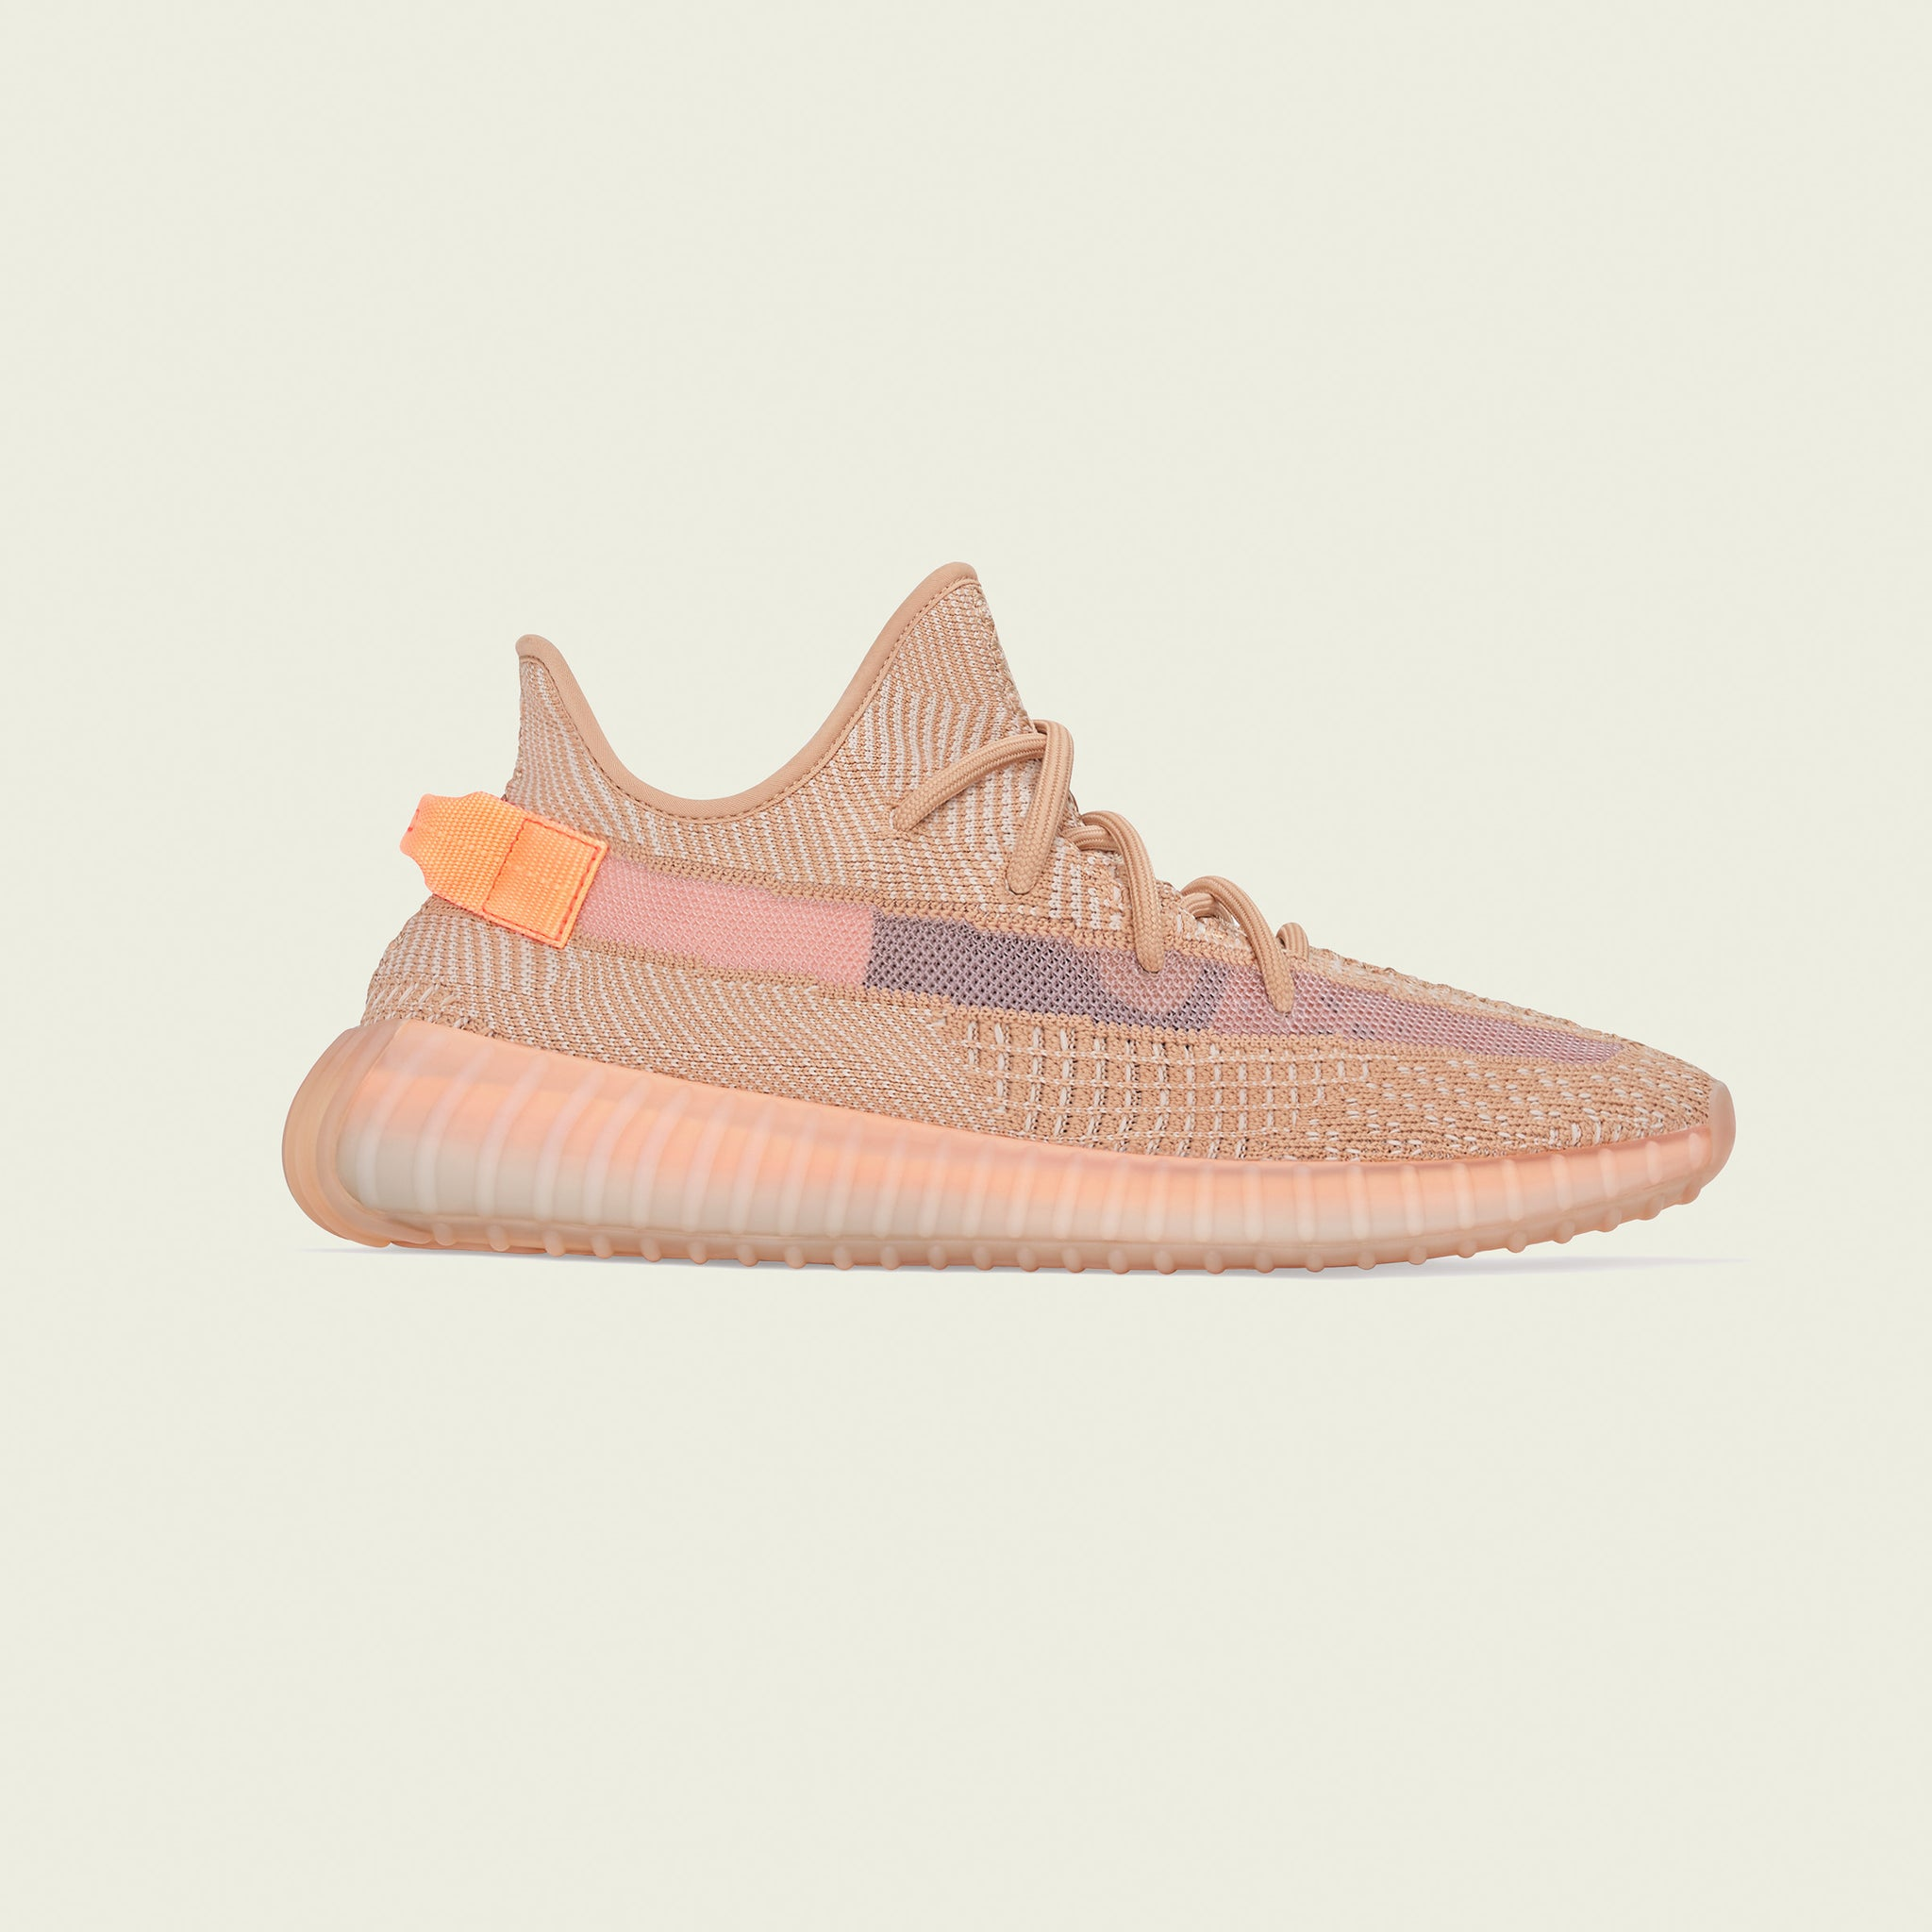 416bcee02664 adidas Originals x KANYE WEST YEEZY BOOST 350 V2